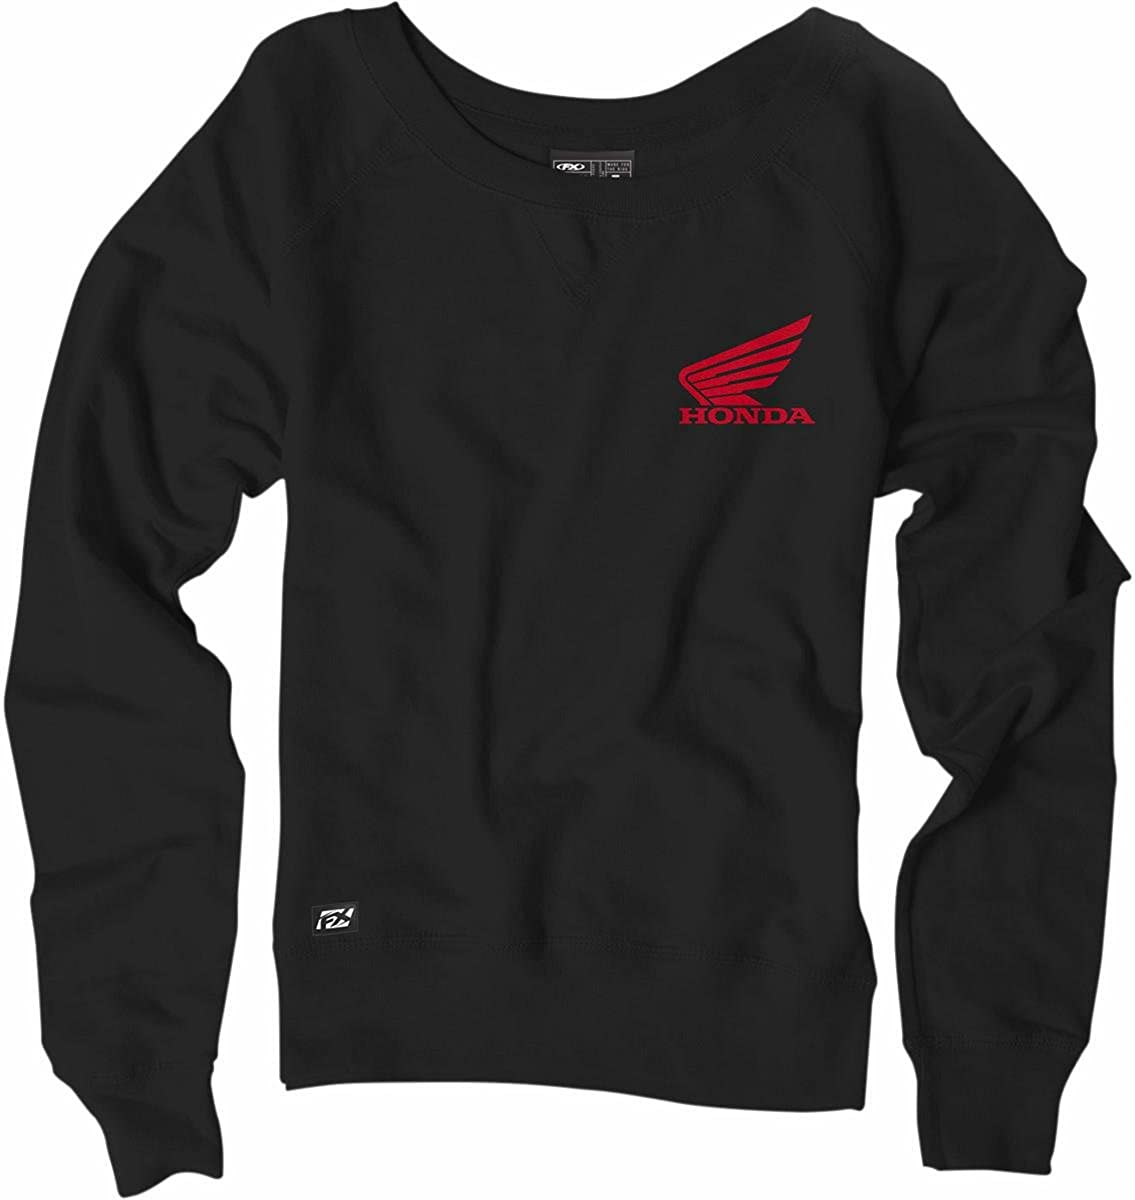 Factory Effex 18-88326 Girls' Sweatshirt Special Some reservation price Black Crew X-Large